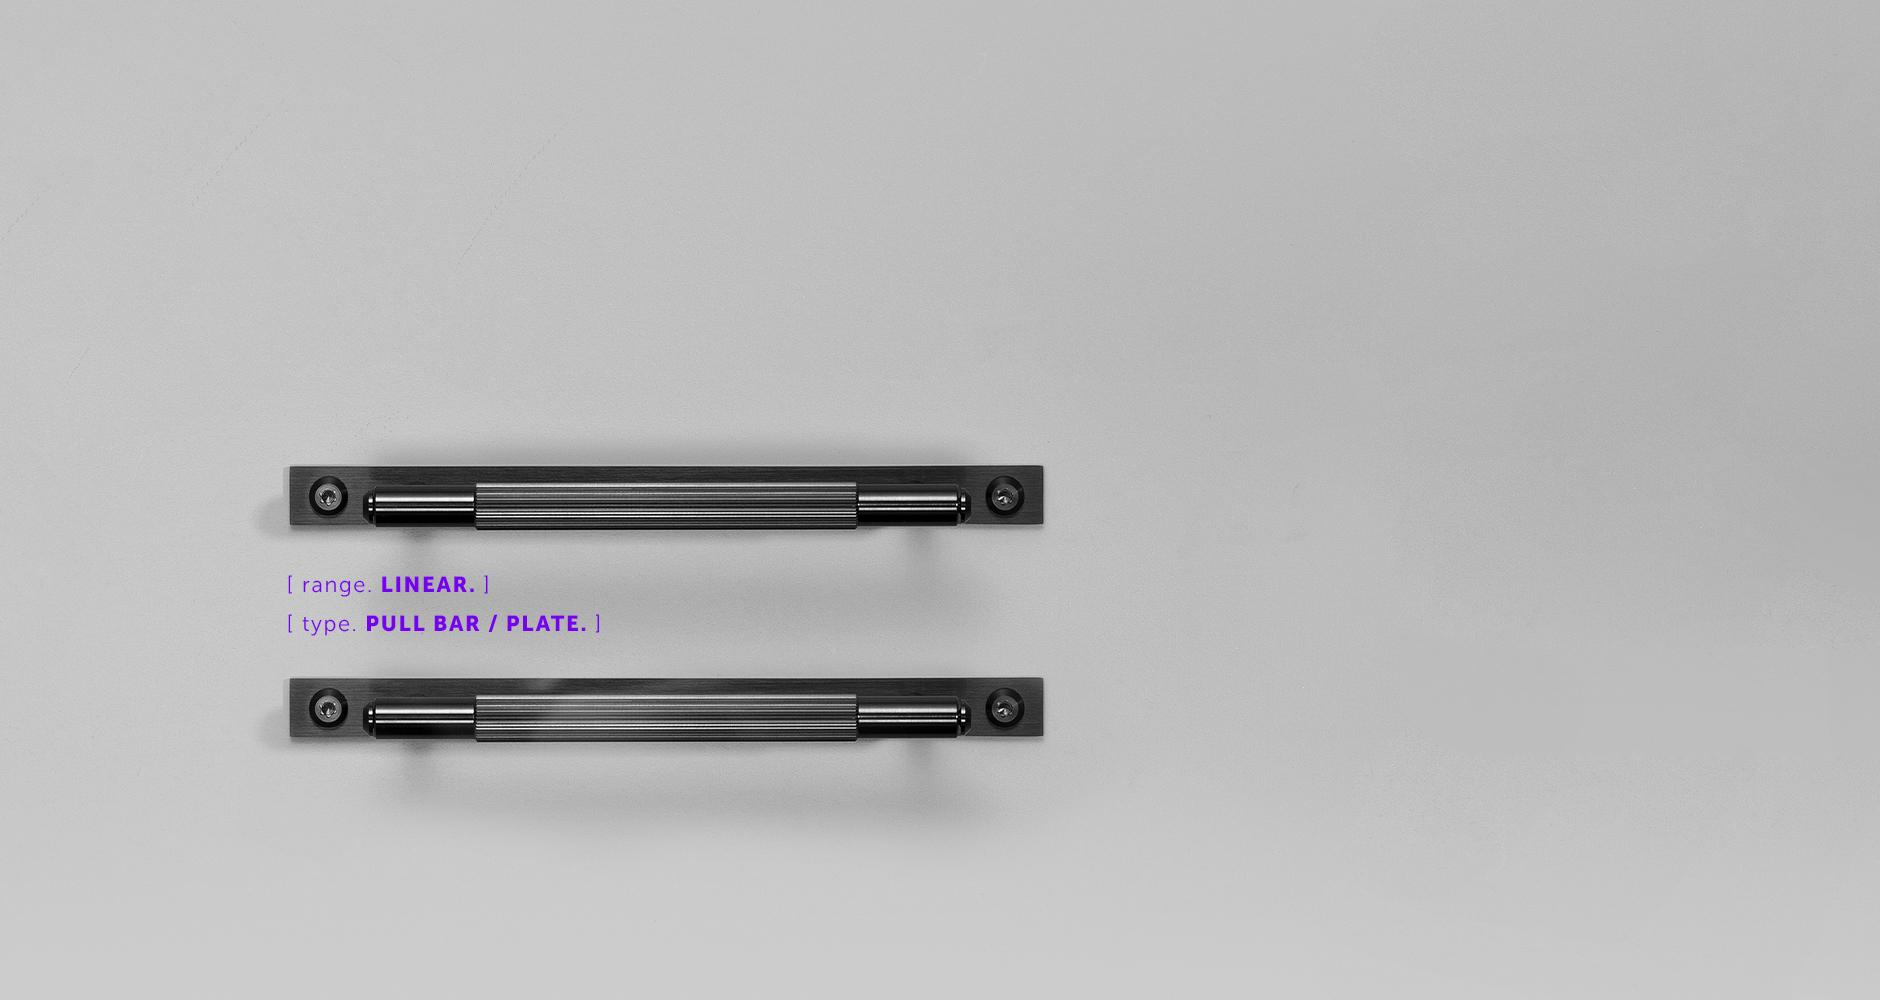 NEW PRODUCT - LINEAR